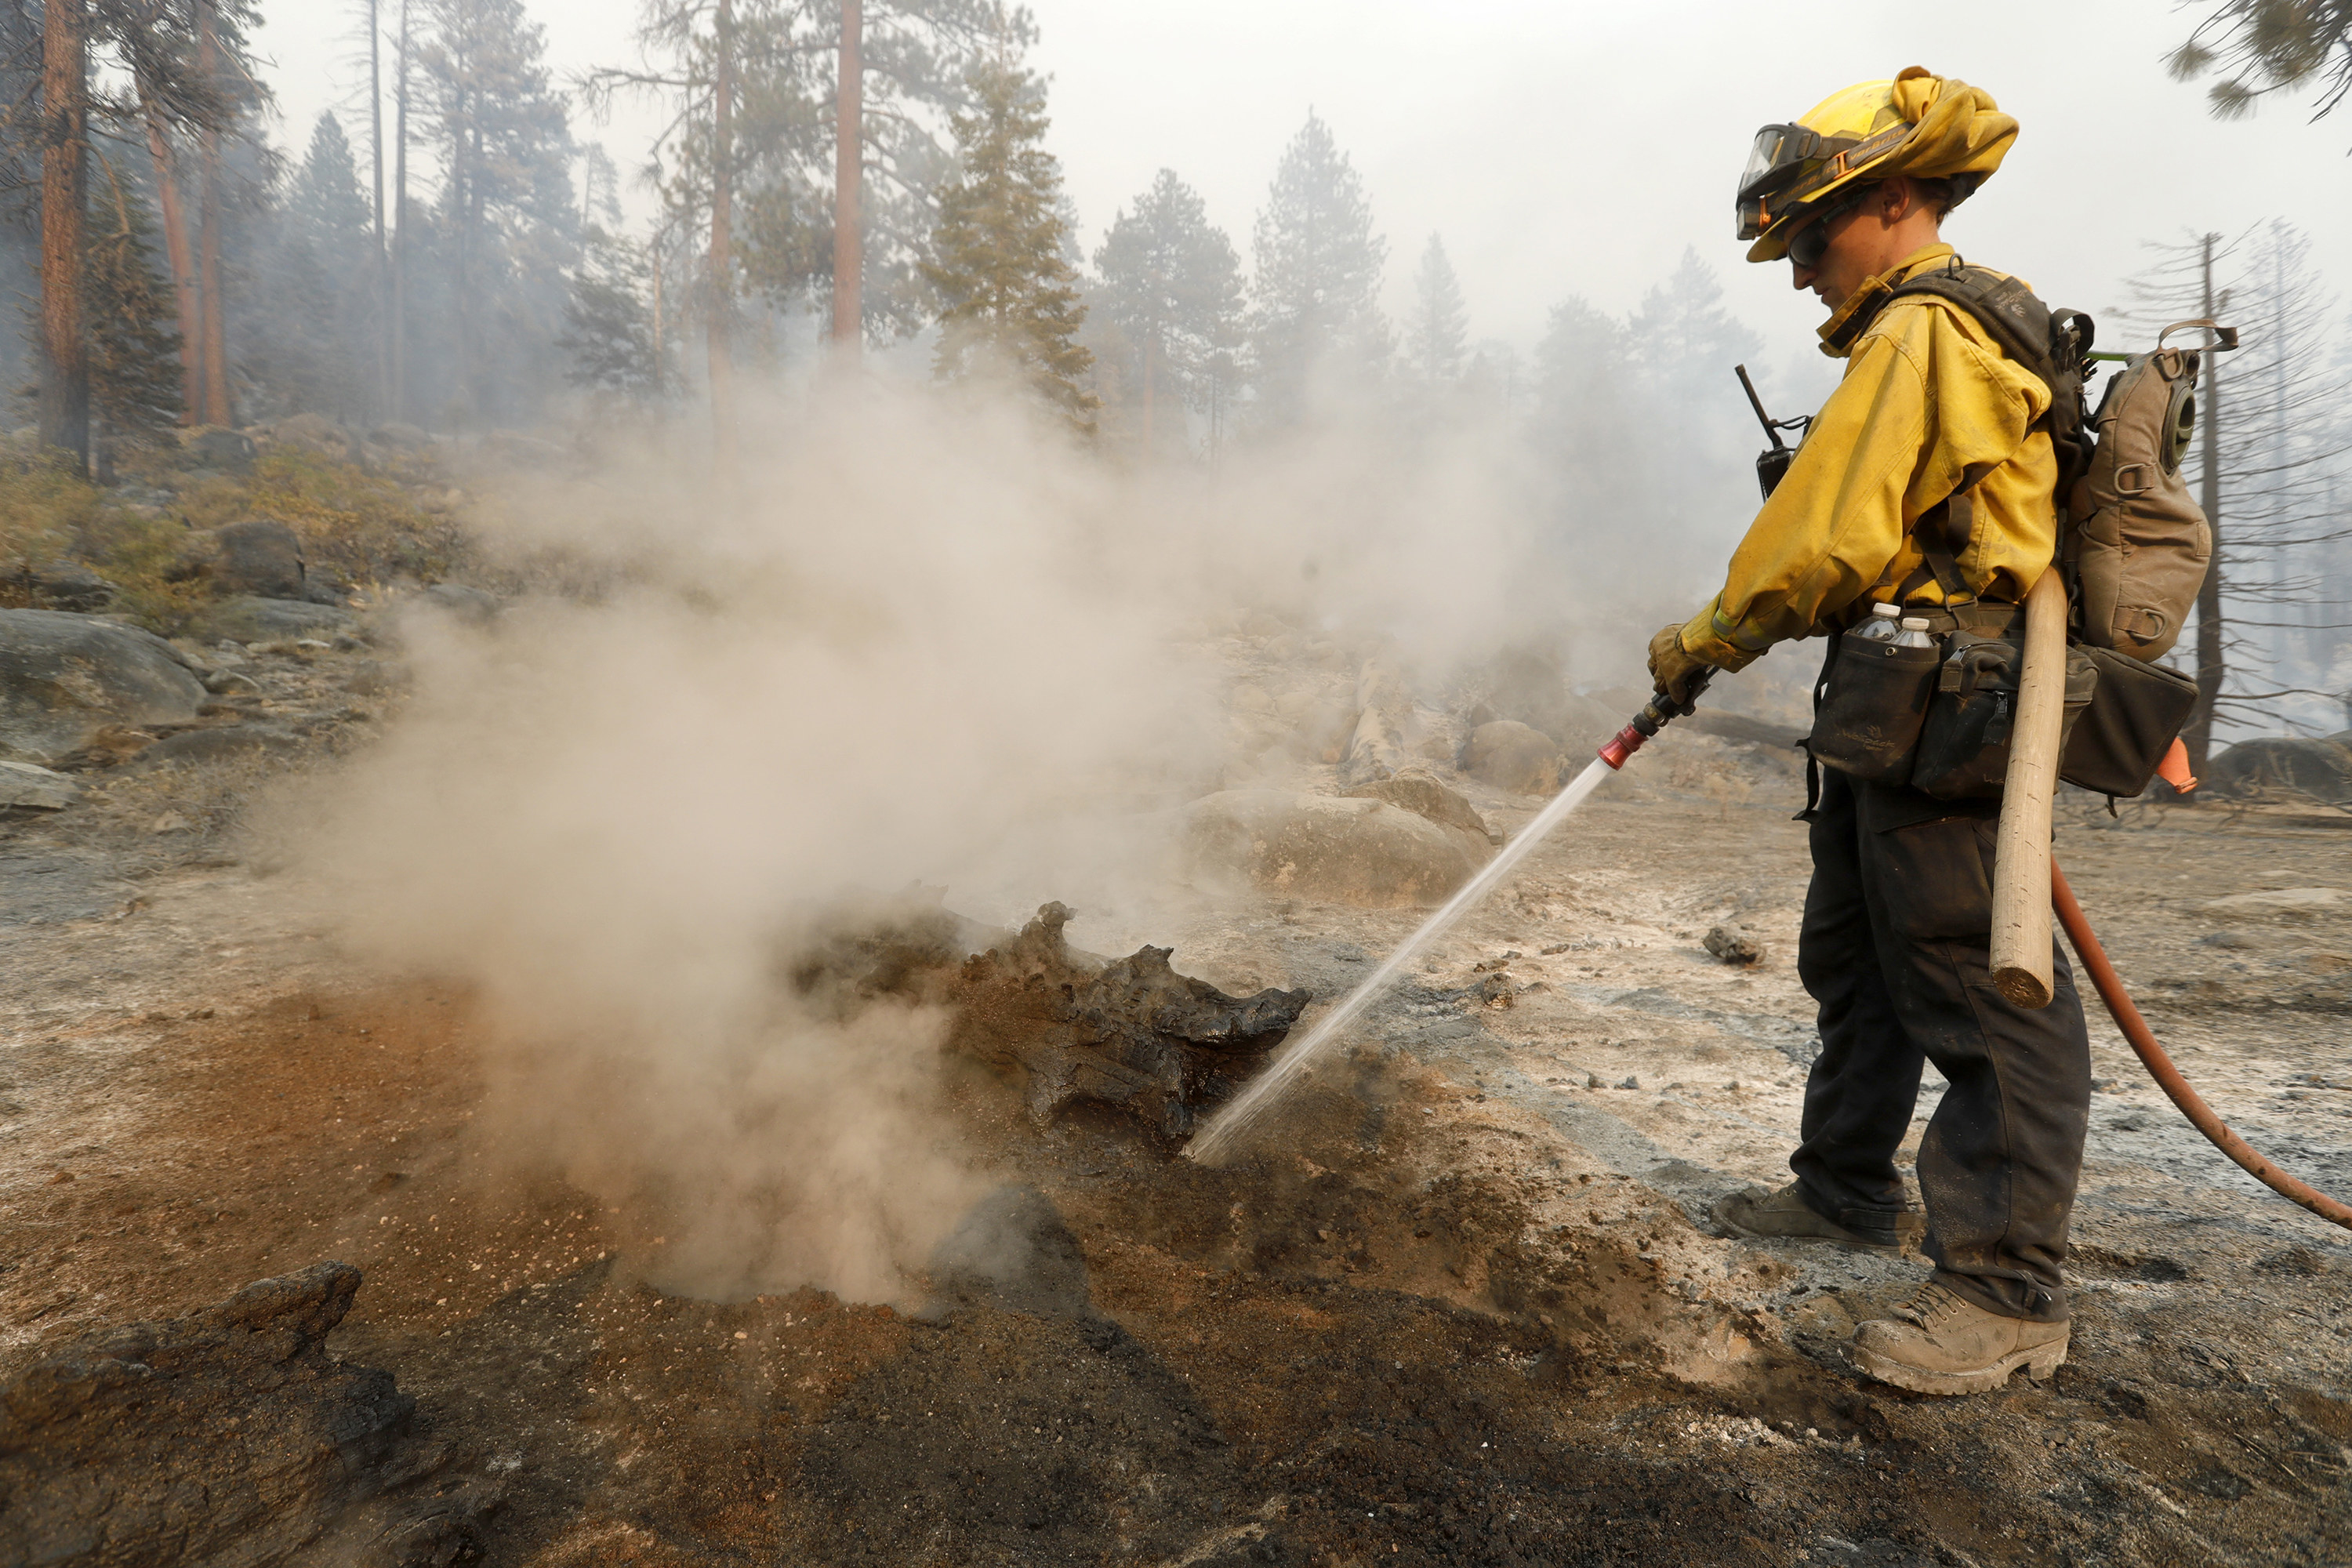 A firefighter points a hose at the ground, where smoke arises from smoldering patches